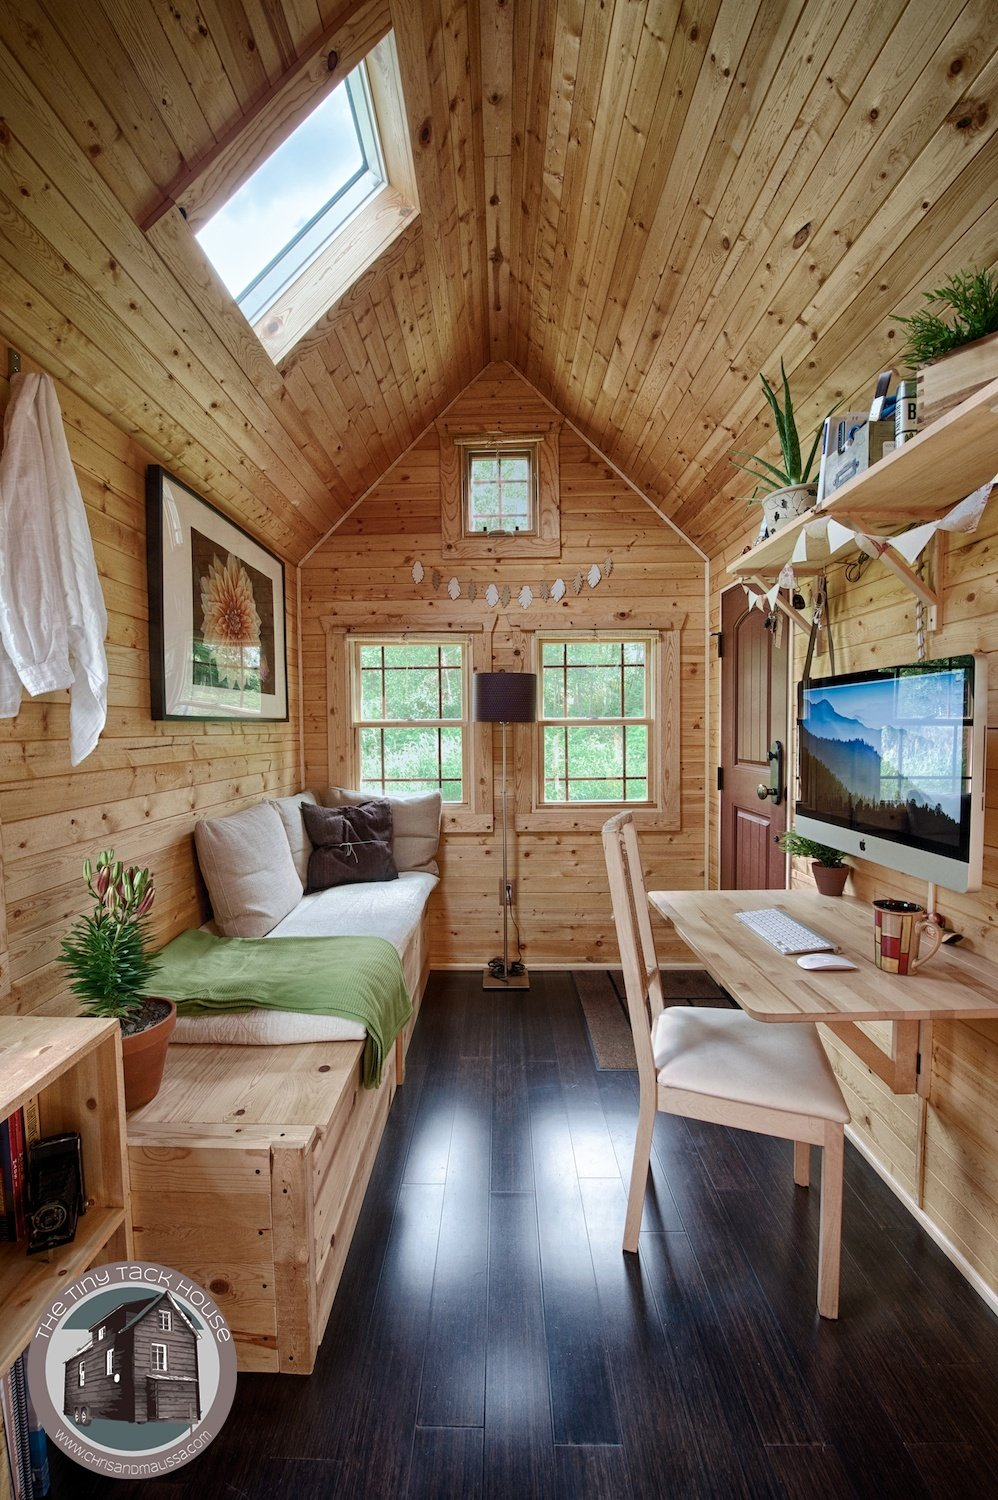 Small House Interior Design: 16 Tiny House Interiors You Wish You Could Live In